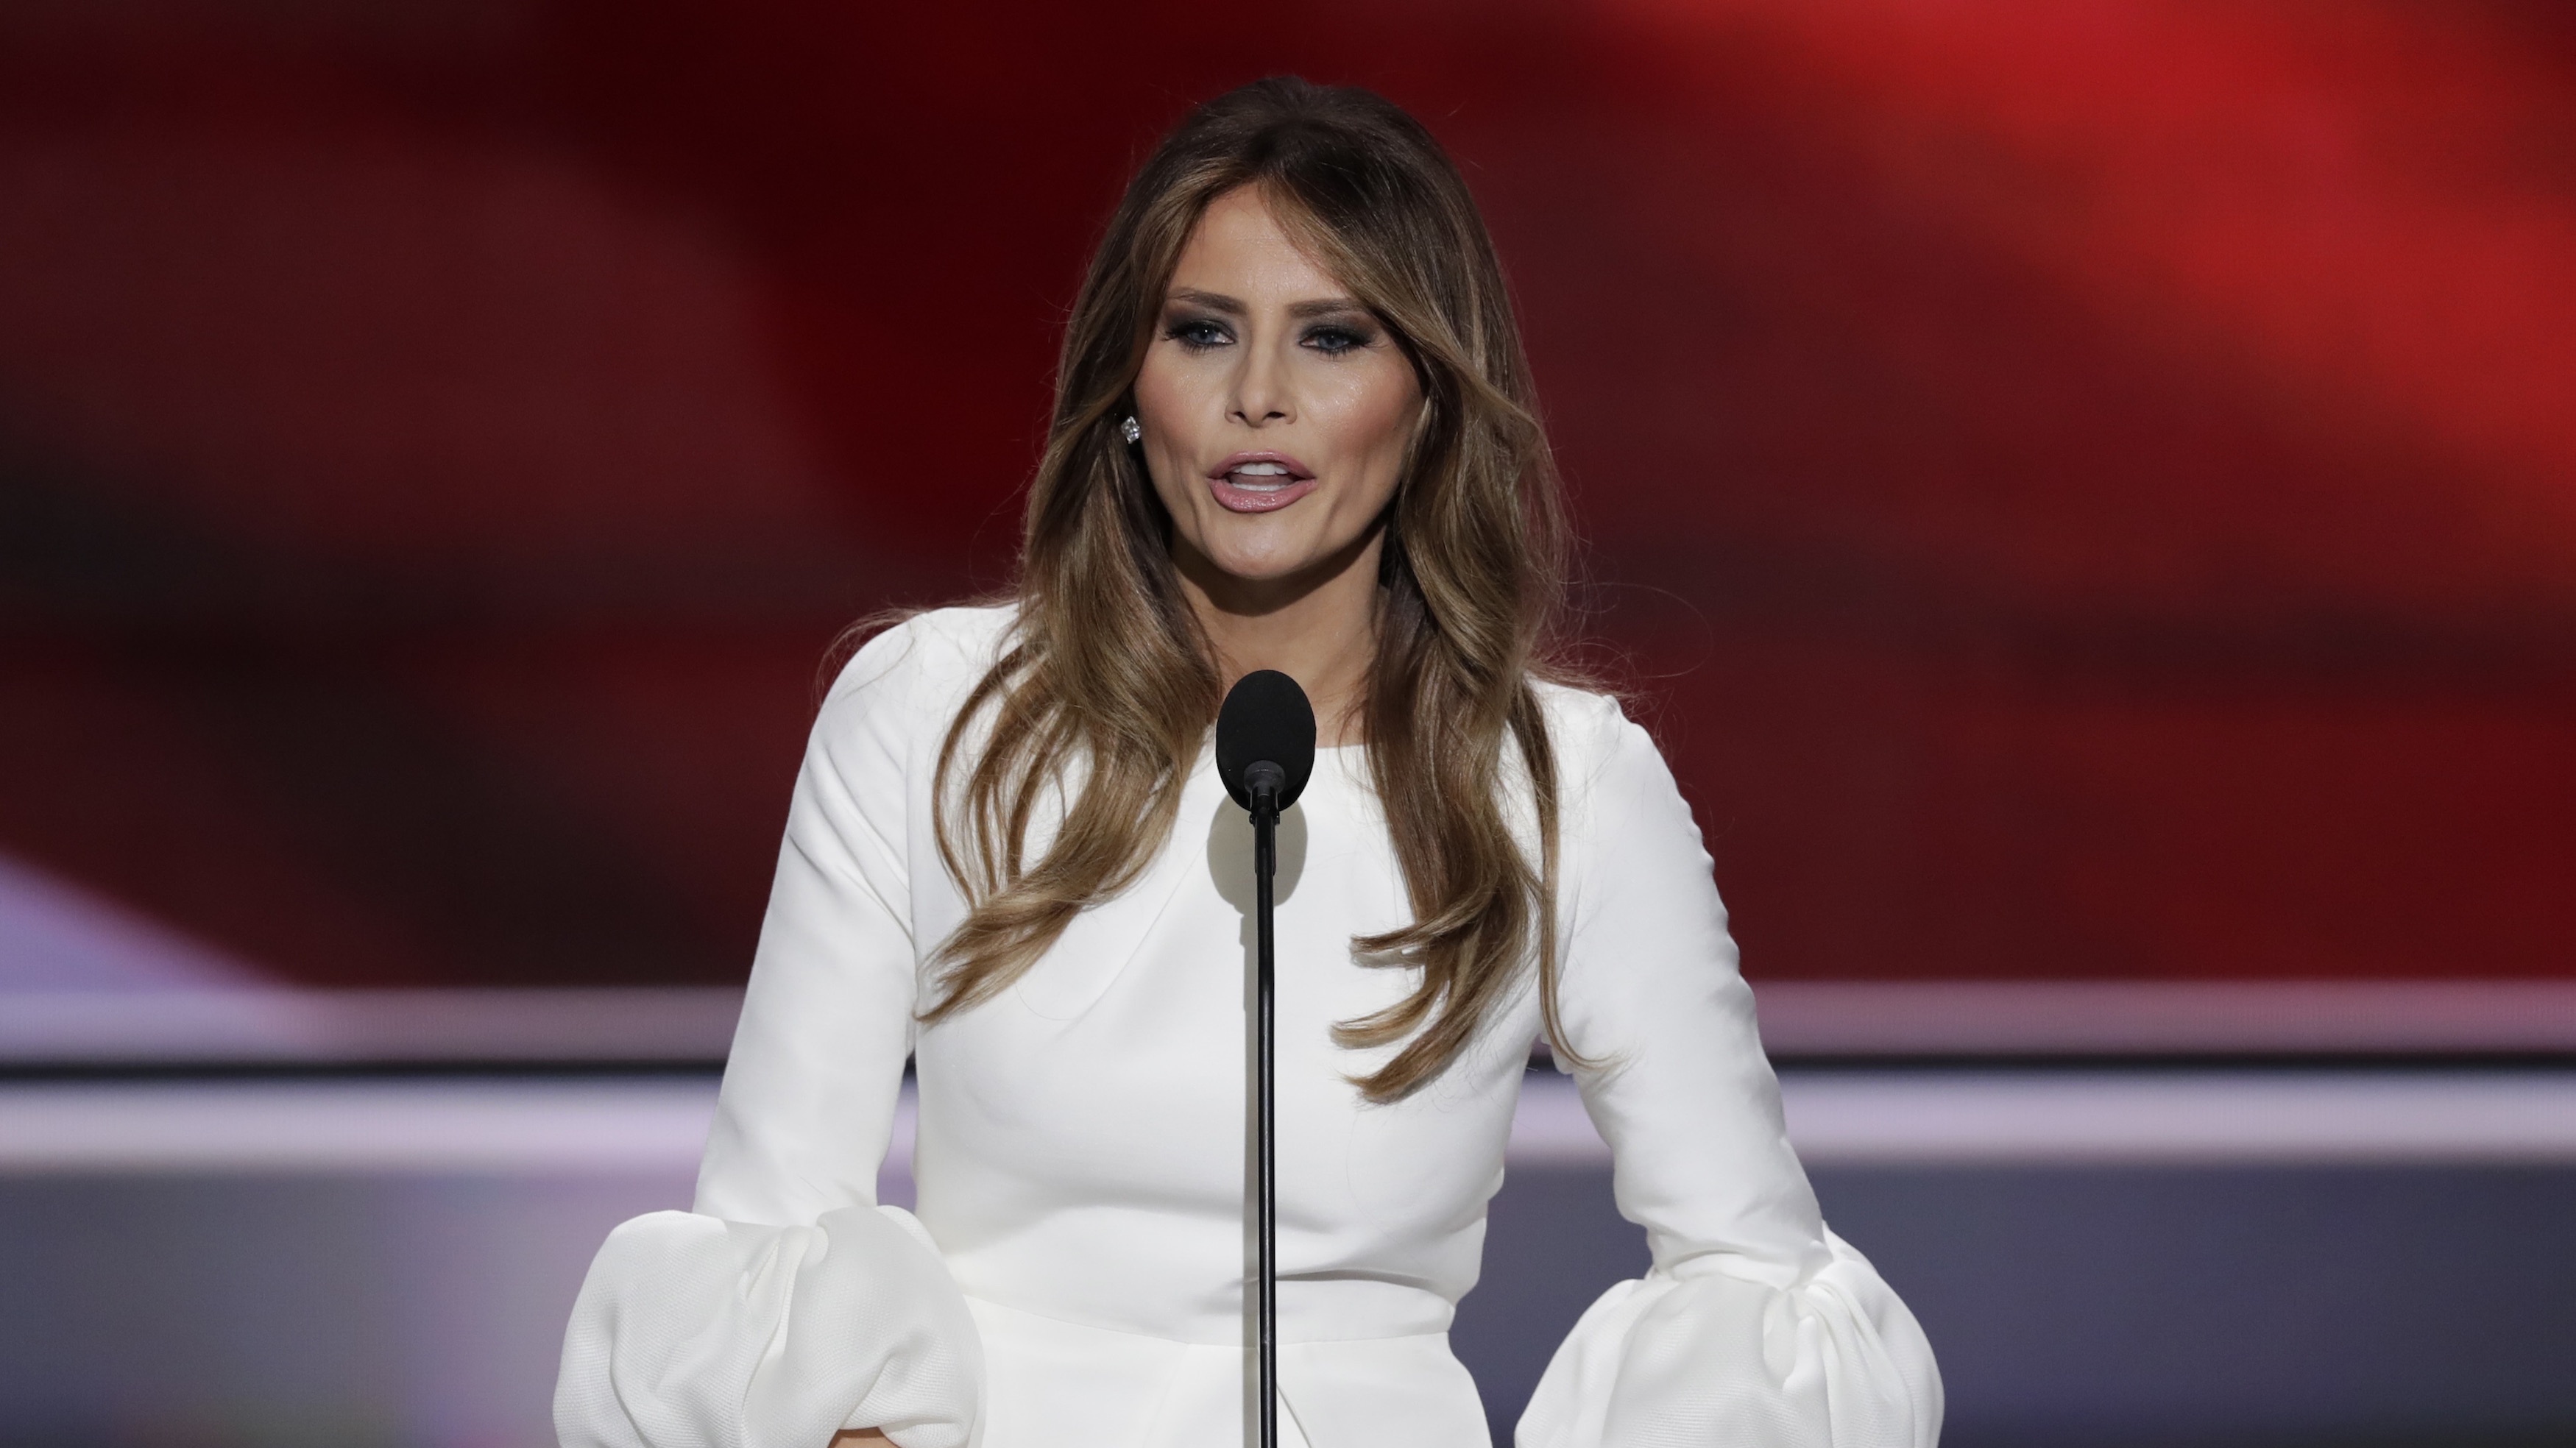 Nude Photos Of Melania Trump Suggest That She May Have Been